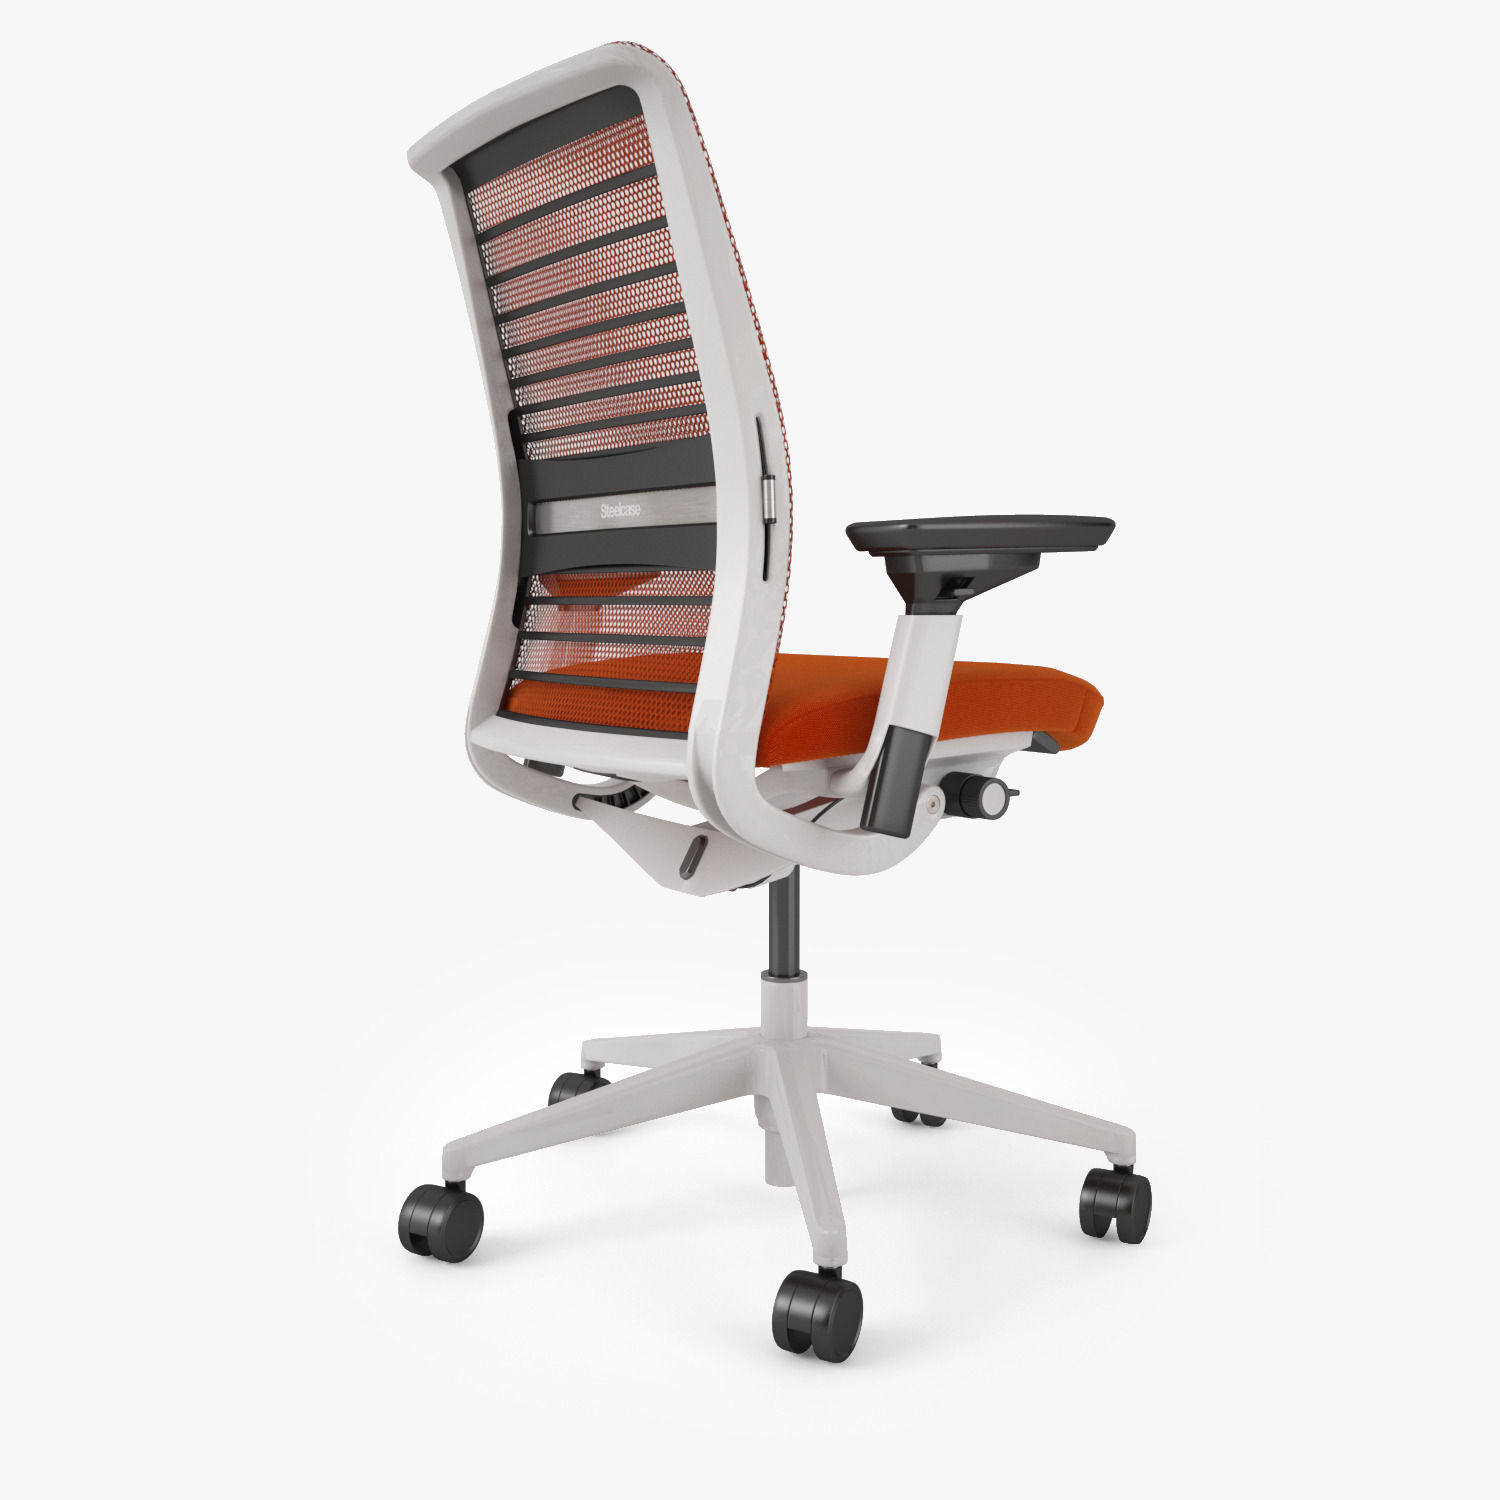 steelcase chair parts round wooden think office 3d model max obj fbx mtl